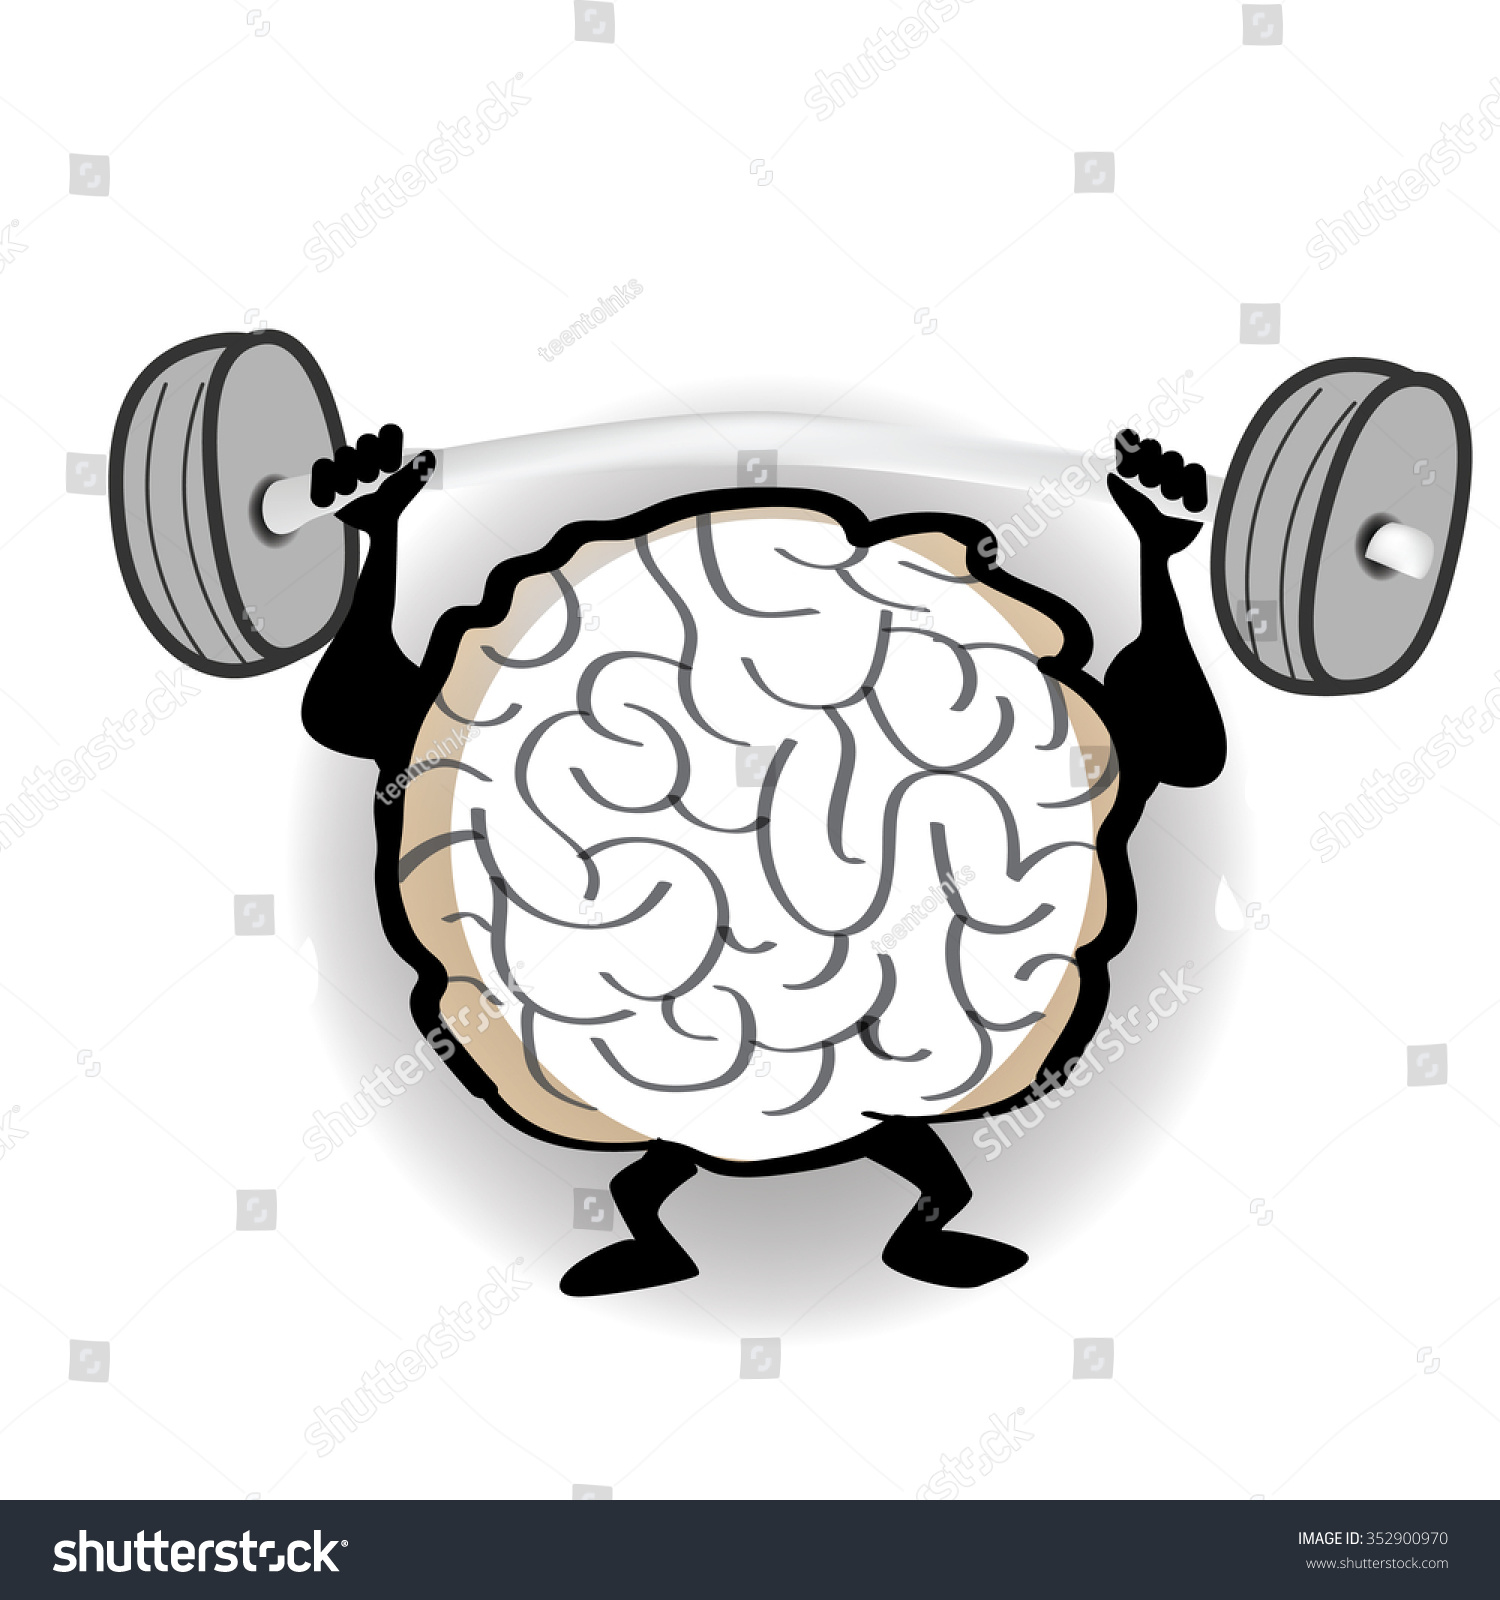 VECTOR Brain Working Out Stock Vector (2018) 352900970 - Shutterstock